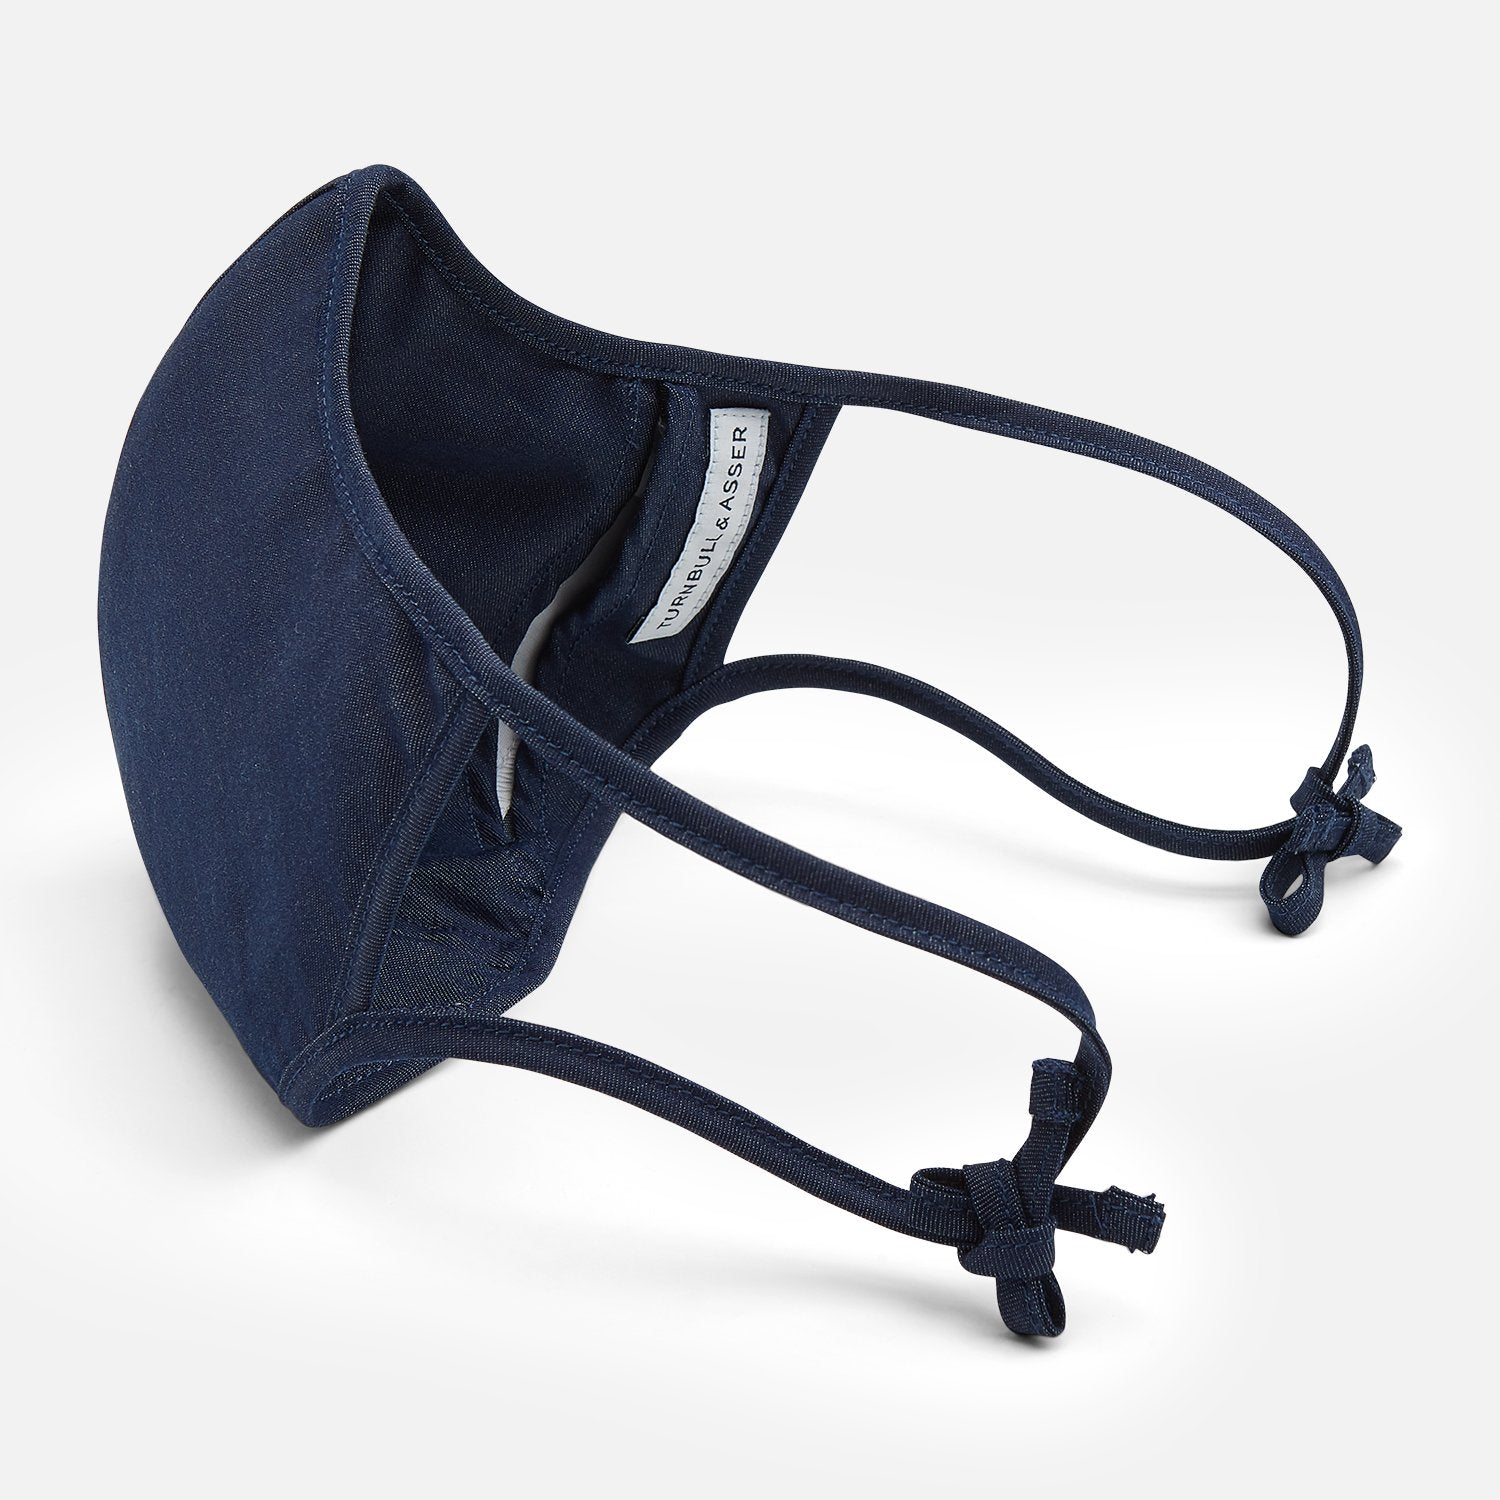 Navy Superfine Cotton Commuter Mask With 3 Viroformula™ Filters